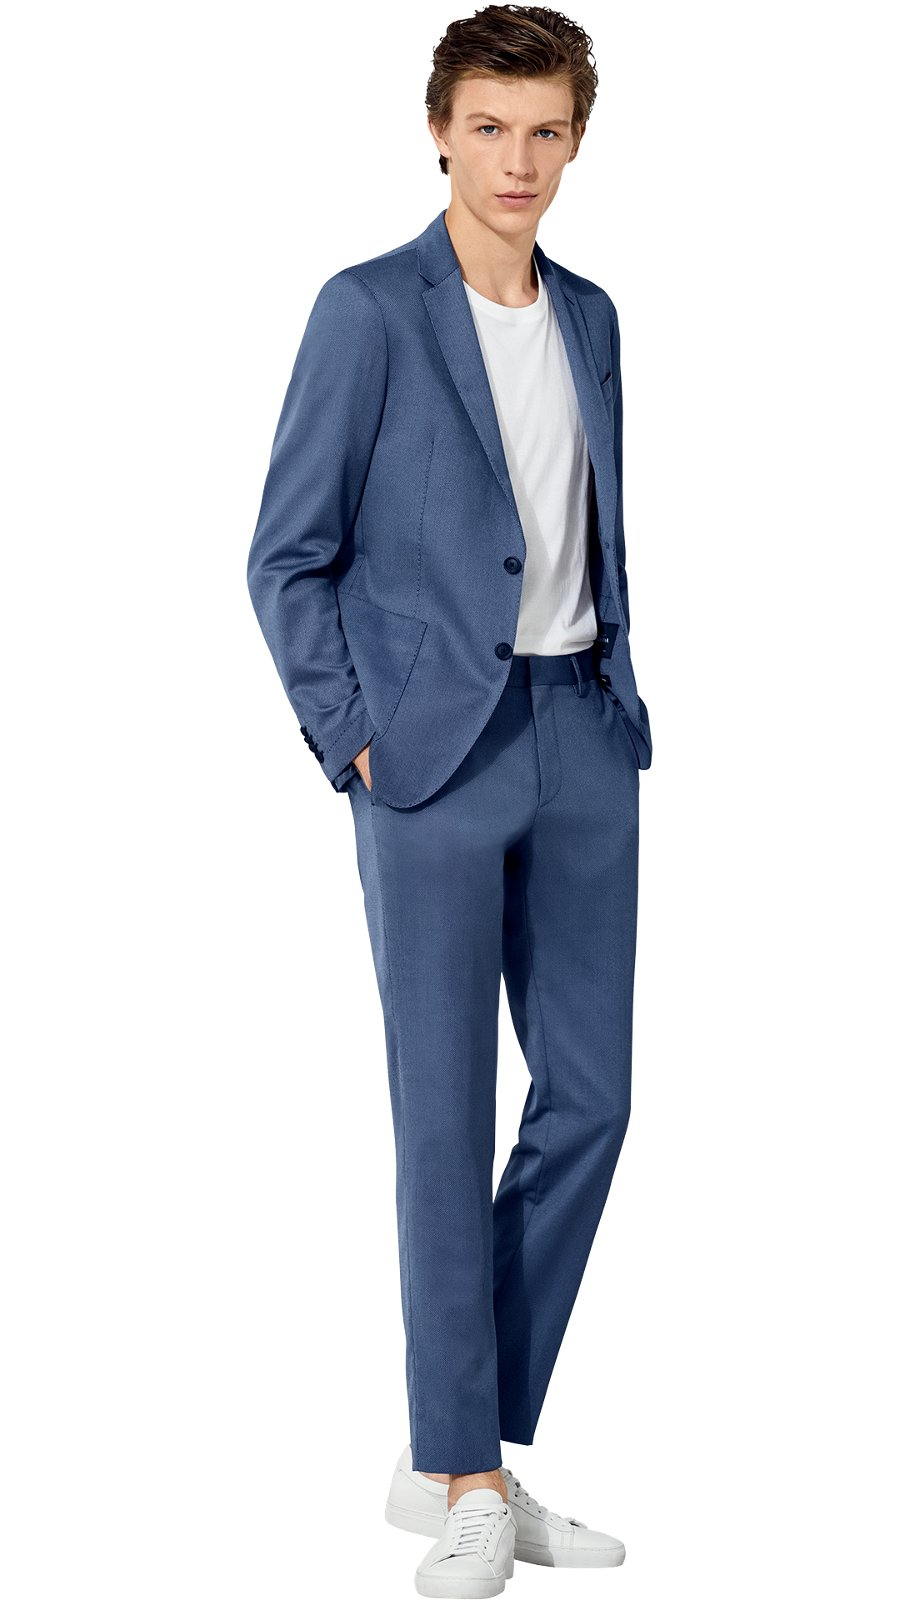 95d86e13a Man wearing blue jacket and trousers with blue shirt and blue shoes by BOSS  ...